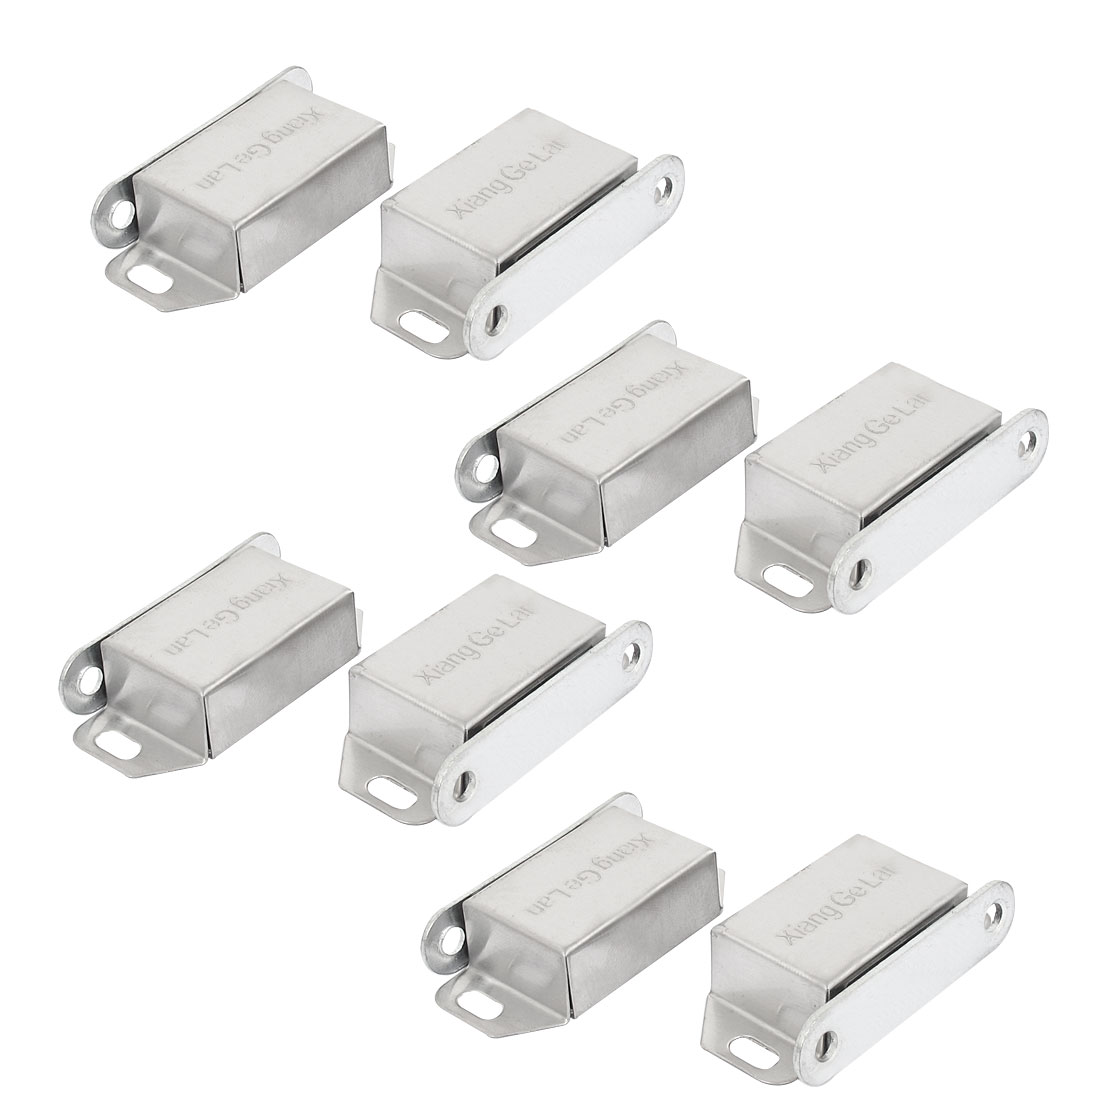 8pcs Stainless Steel Door Cabinet Wardrobe Magnetic Catch Stopper Holder Latch